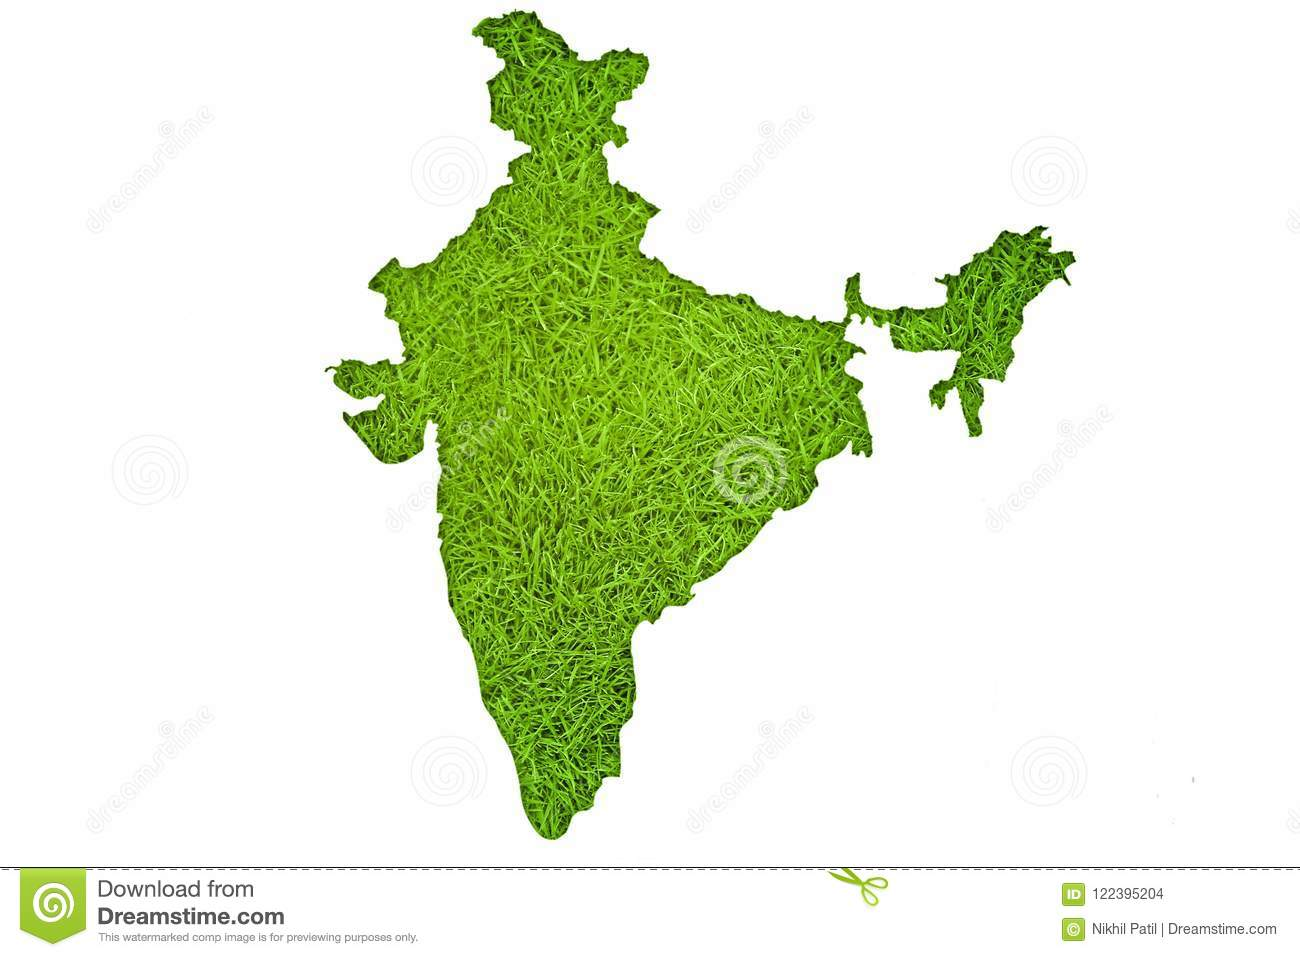 Indian map on gr stock photo. Image of city, asia - 122395204 on indian home, indian church, indian geography, indian art, indian helmet, india map, indian restaurants, indan map, indian health, indian sports, indian culture, indian transportation, china map, indian city weather, indian clothing, taj mahal site map, indian design, indian city drawing,